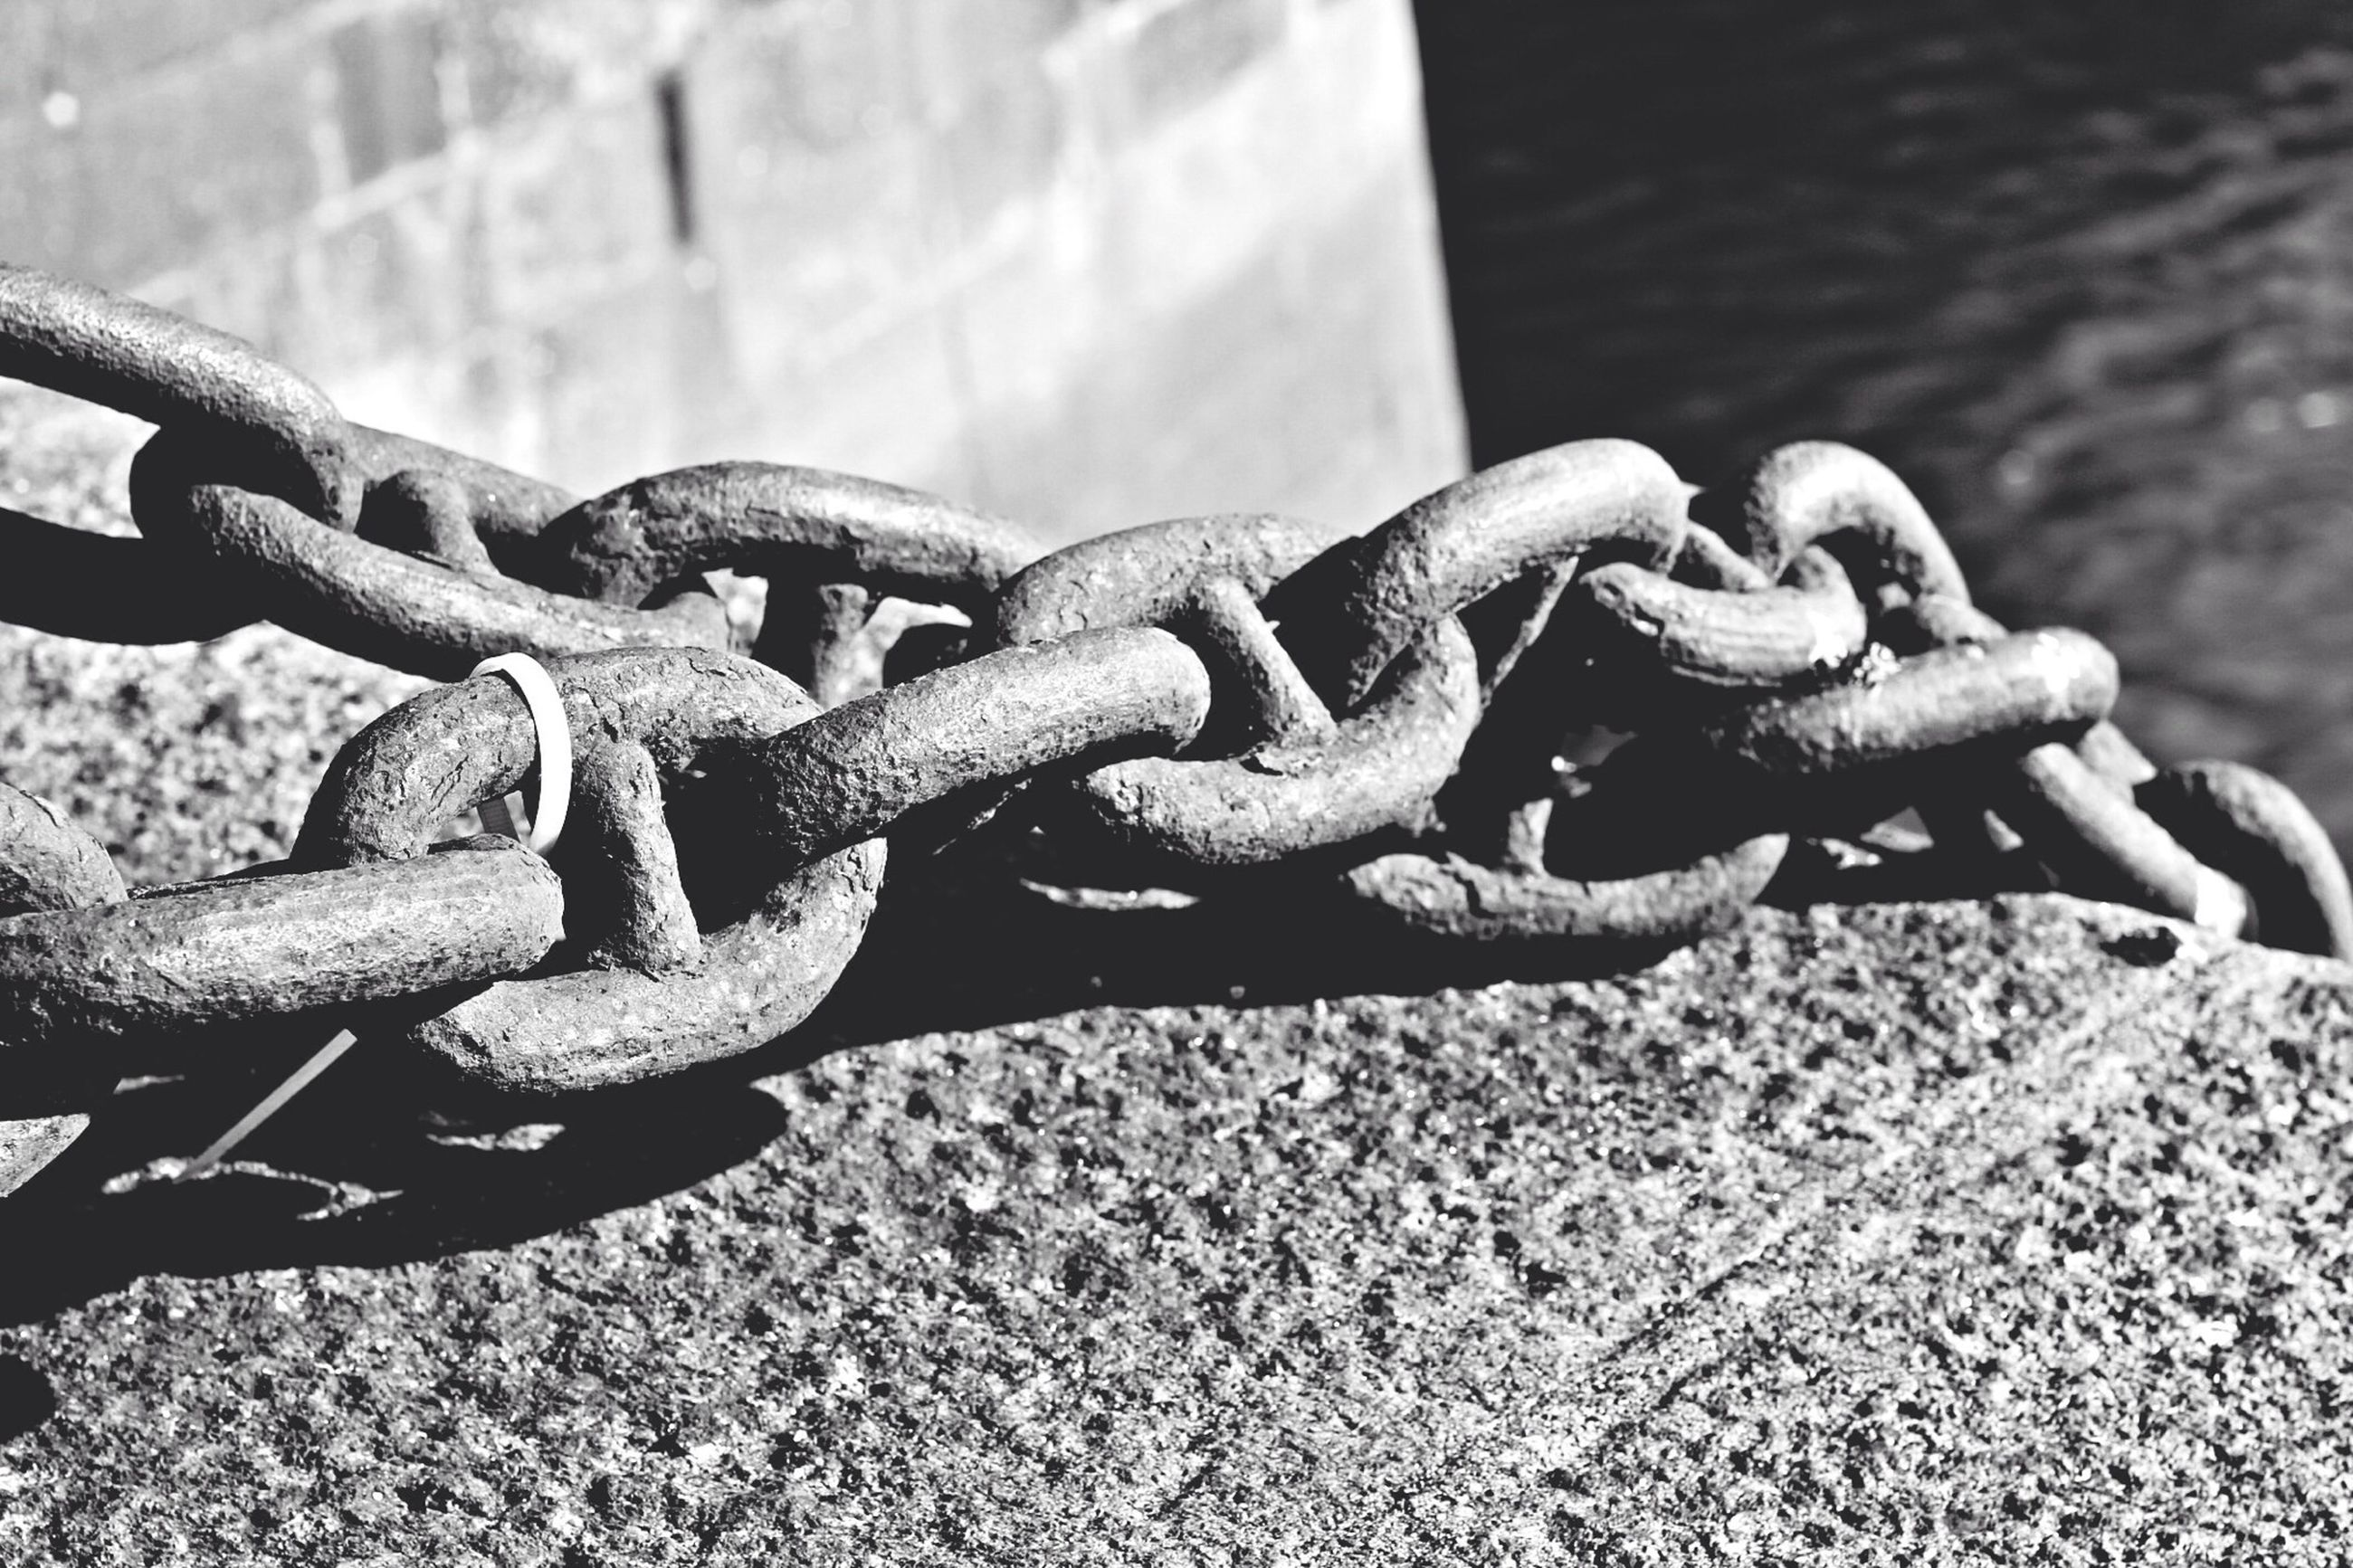 metal, chain, close-up, focus on foreground, metallic, strength, protection, safety, security, rusty, fence, rope, connection, day, water, outdoors, tied up, no people, chainlink fence, padlock